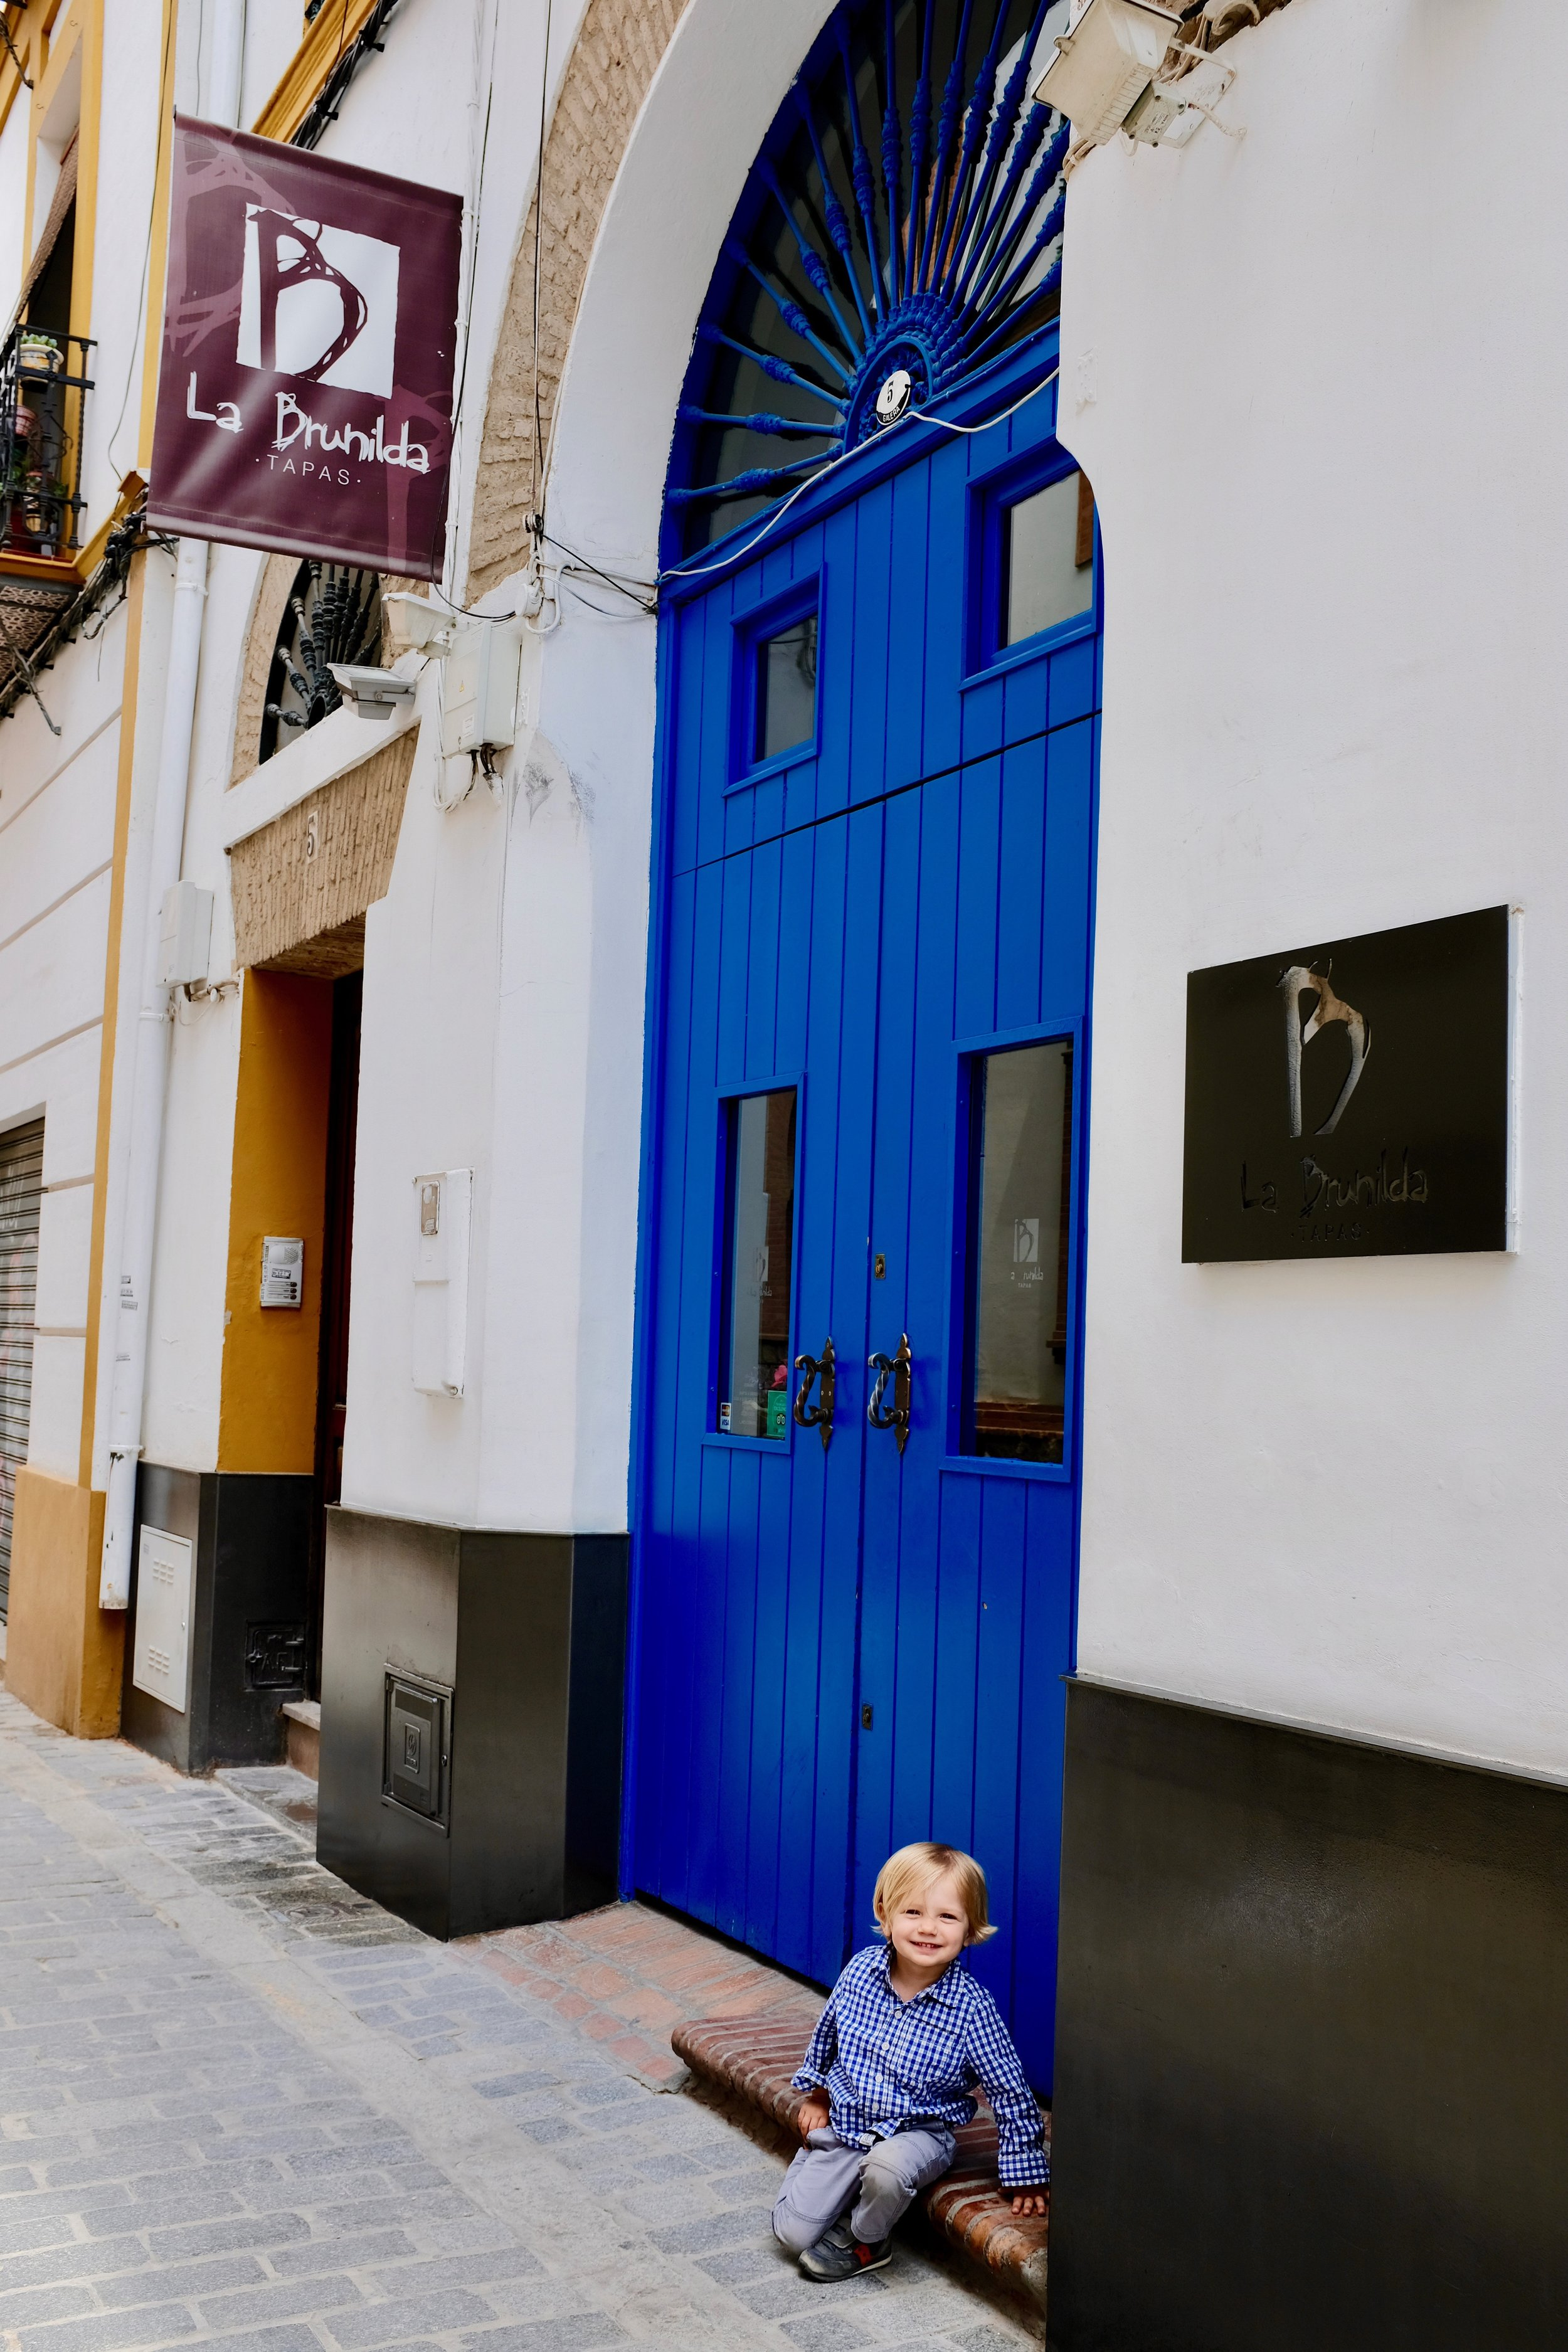 Jimmy waiting patiently for La Brunilda to open their doors for lunch.